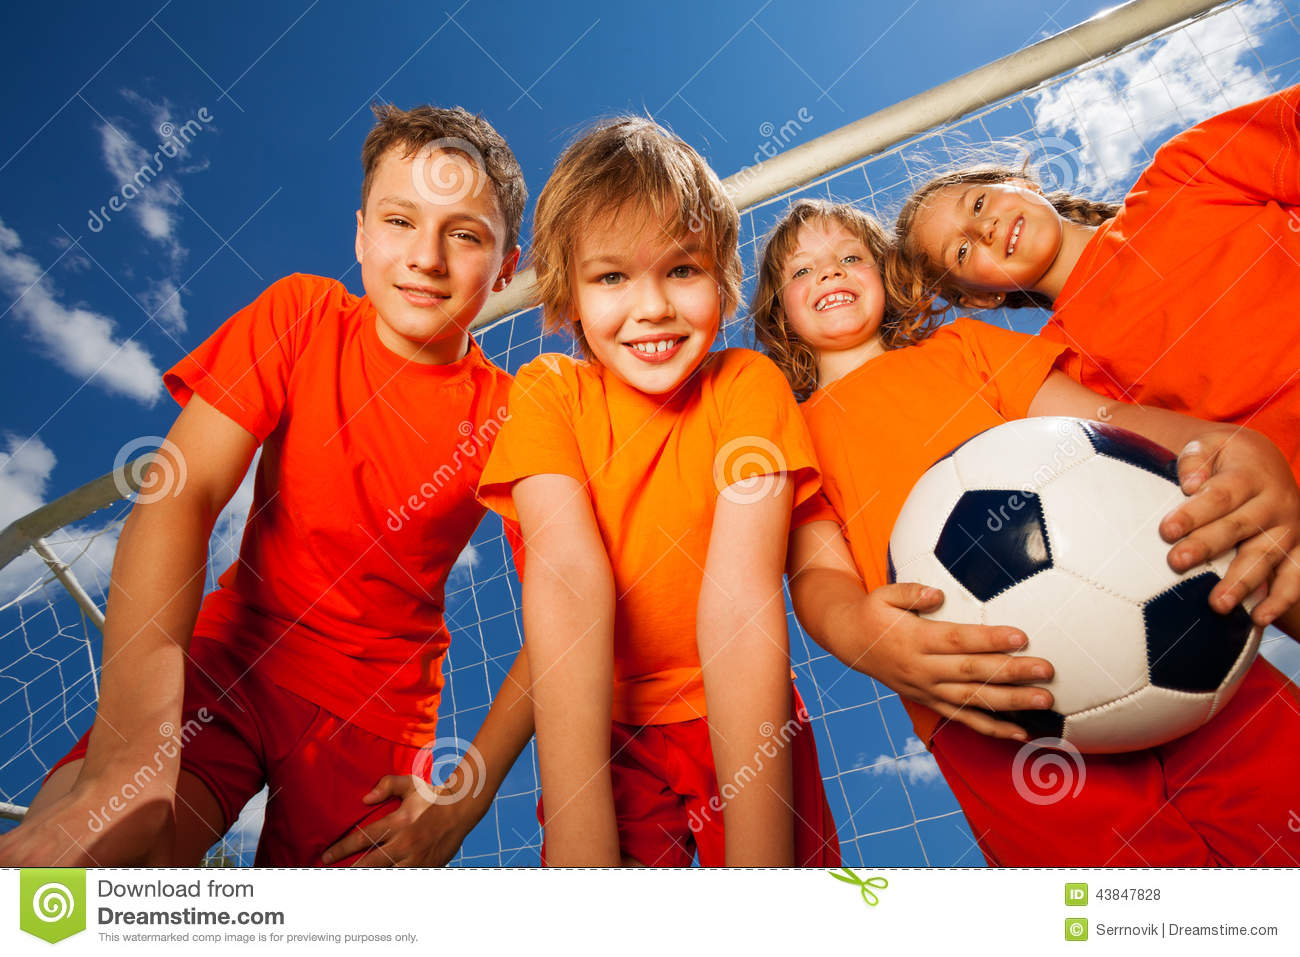 ae9afeafb463 Four Happy Kids With Football Portrait Stock Photo - Image of hold ...